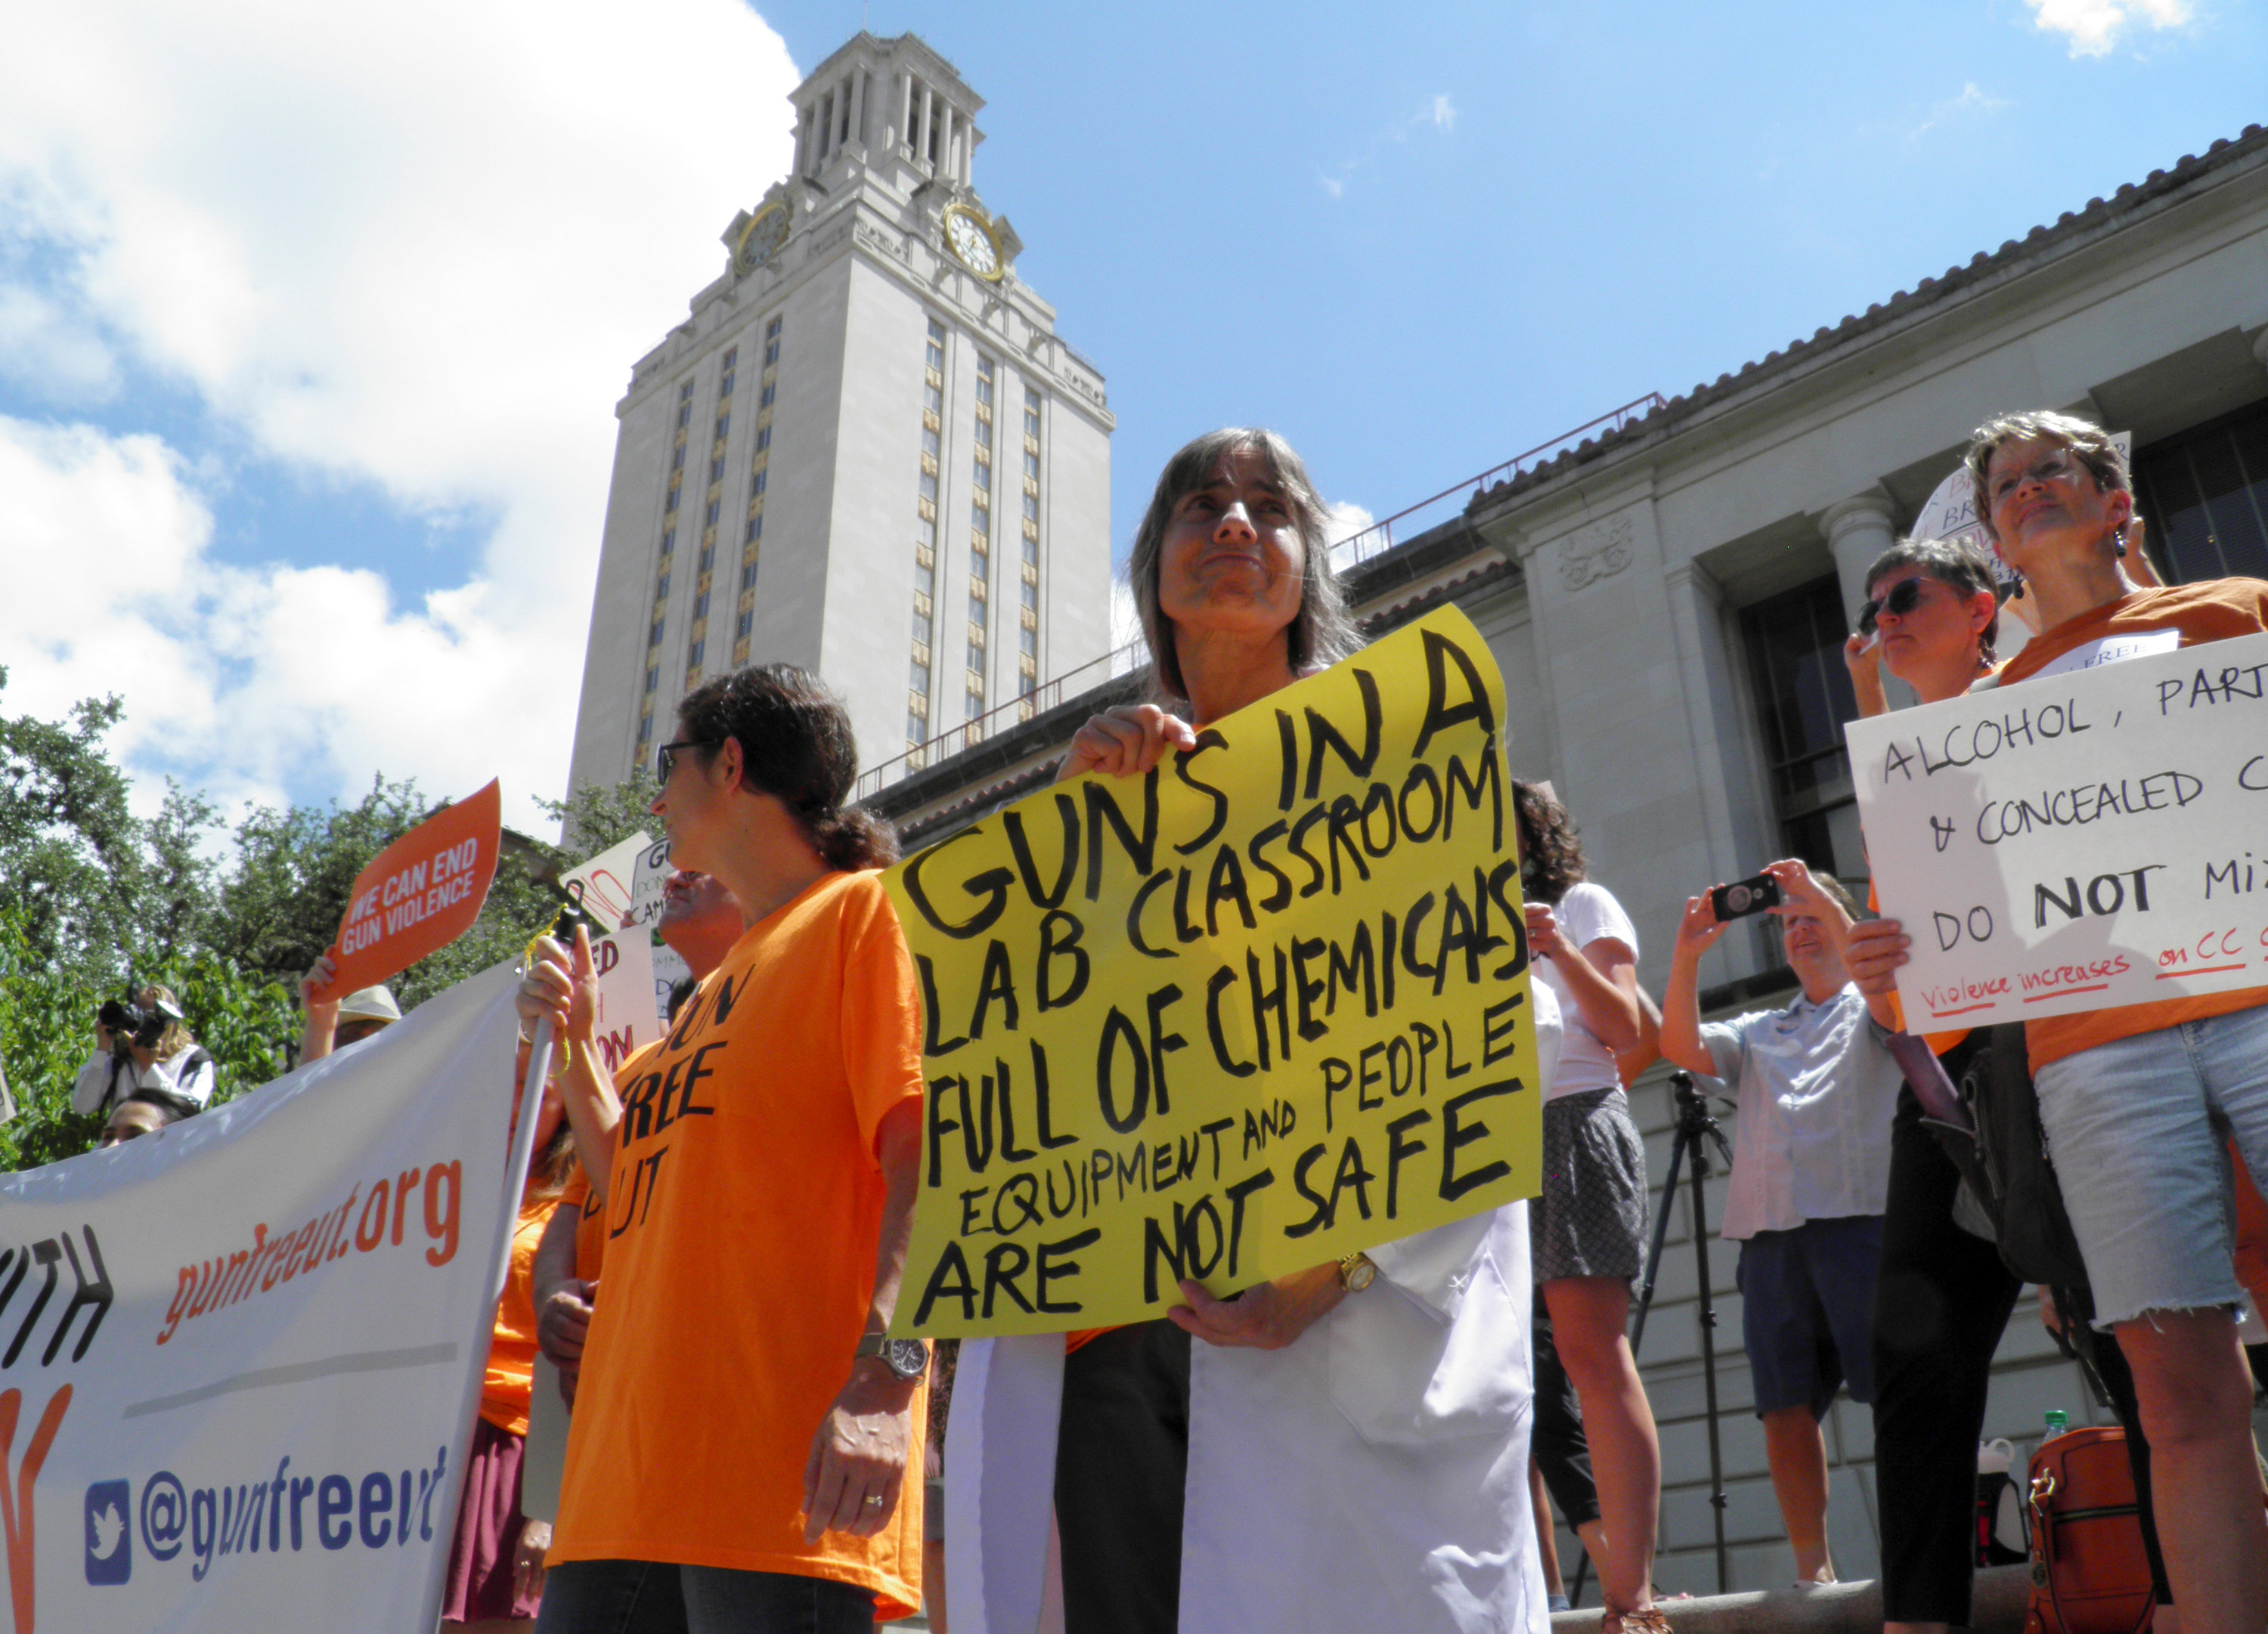 FILE PHOTO: Members of the University of Texas of the Guns Free UT group that includes faculty and staff protest against a state law that allows for guns in classrooms at college campuses, in Austin, Texas, U.S. August 24, 2016. REUTERS/Jon Herskovitz/File Photo